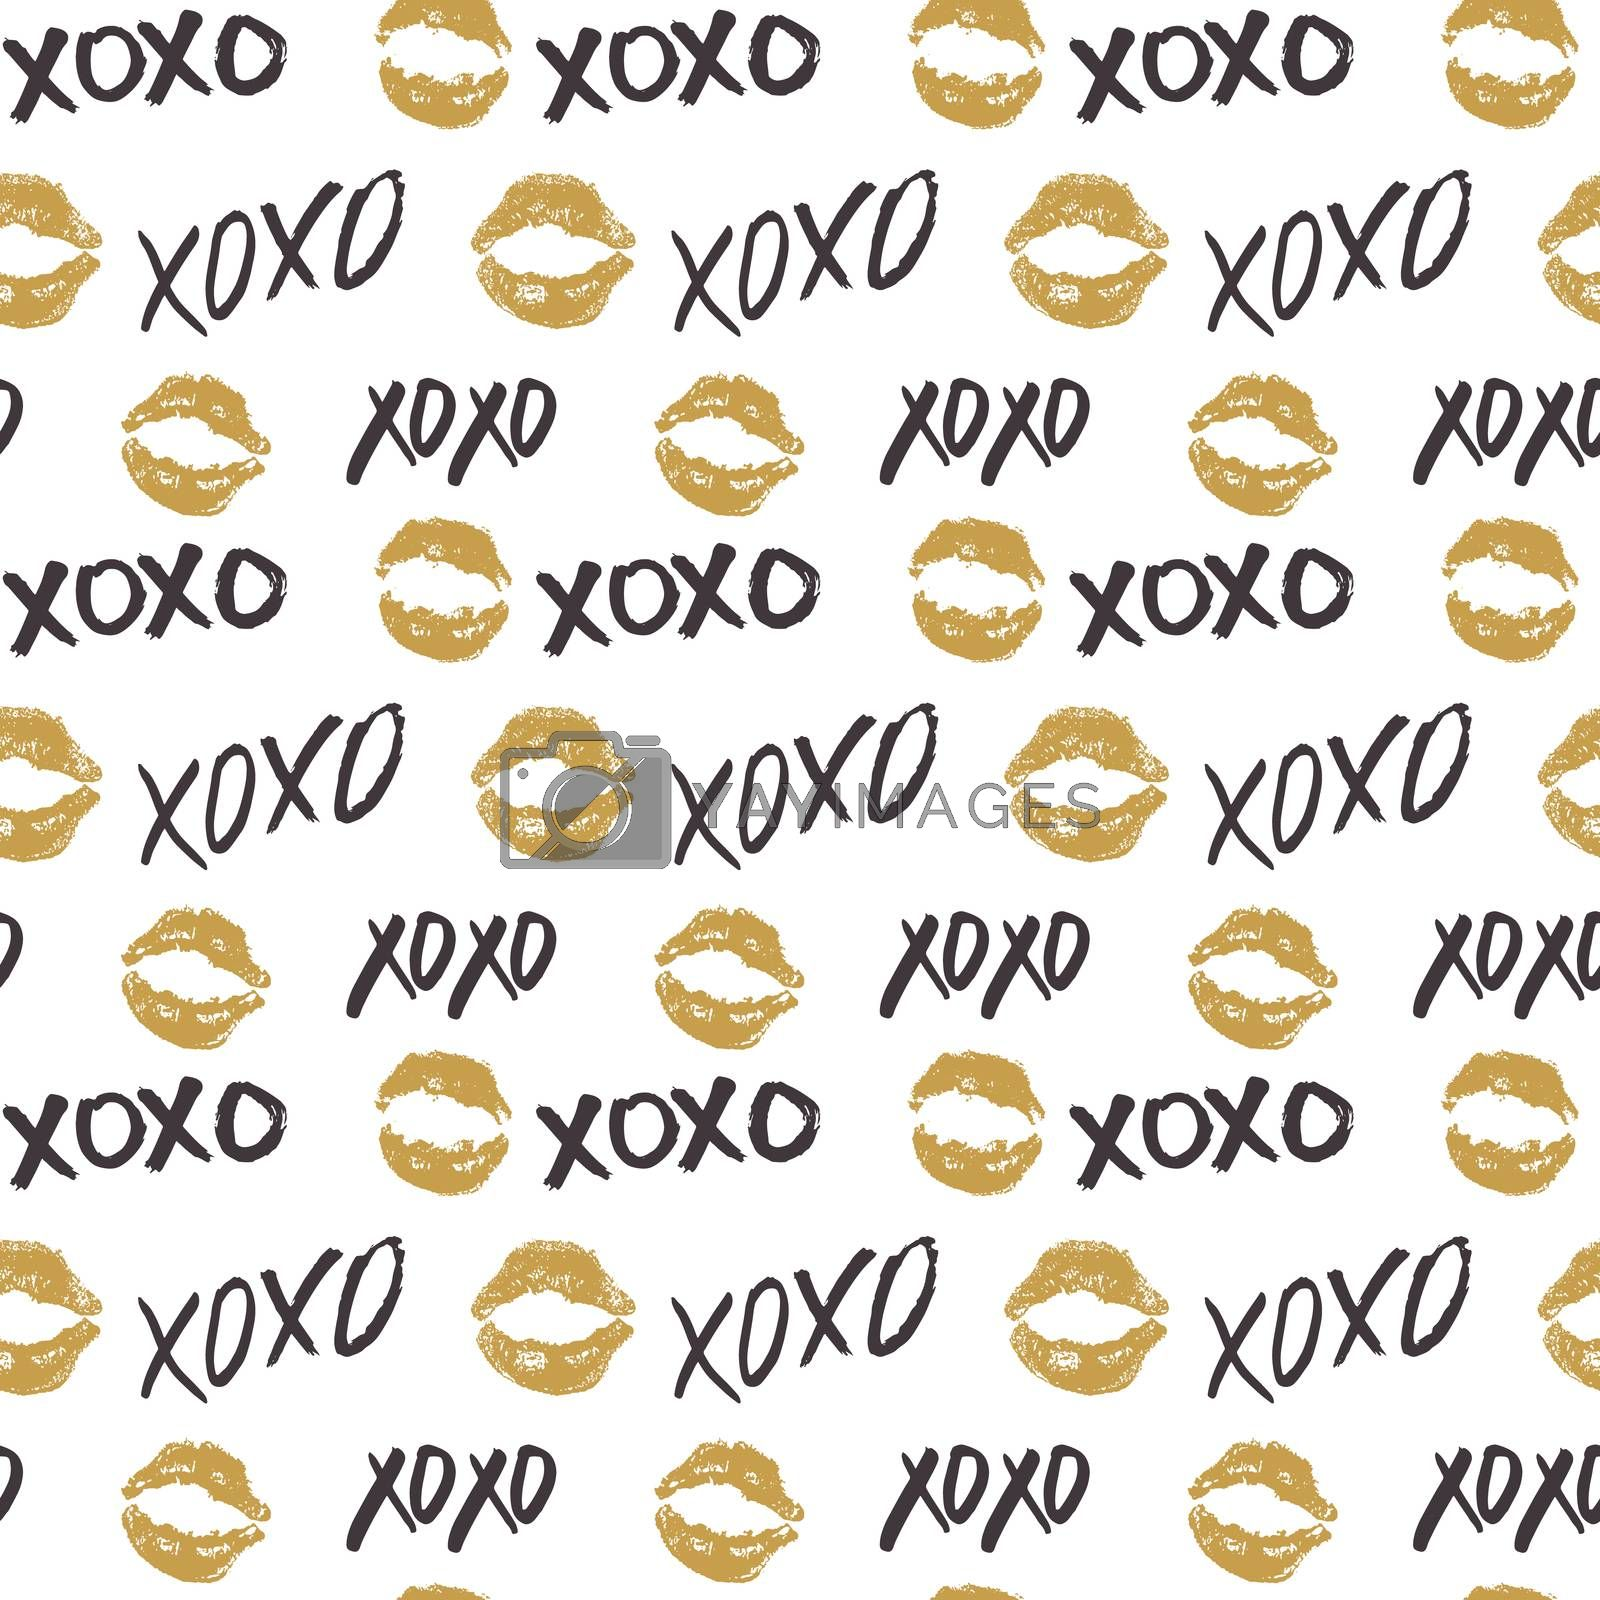 XOXO brush lettering signs seamless pattern, Grunge calligraphic hugs and kisses Phrase, Internet slang abbreviation XOXO symbols, vector illustration isolated on white background